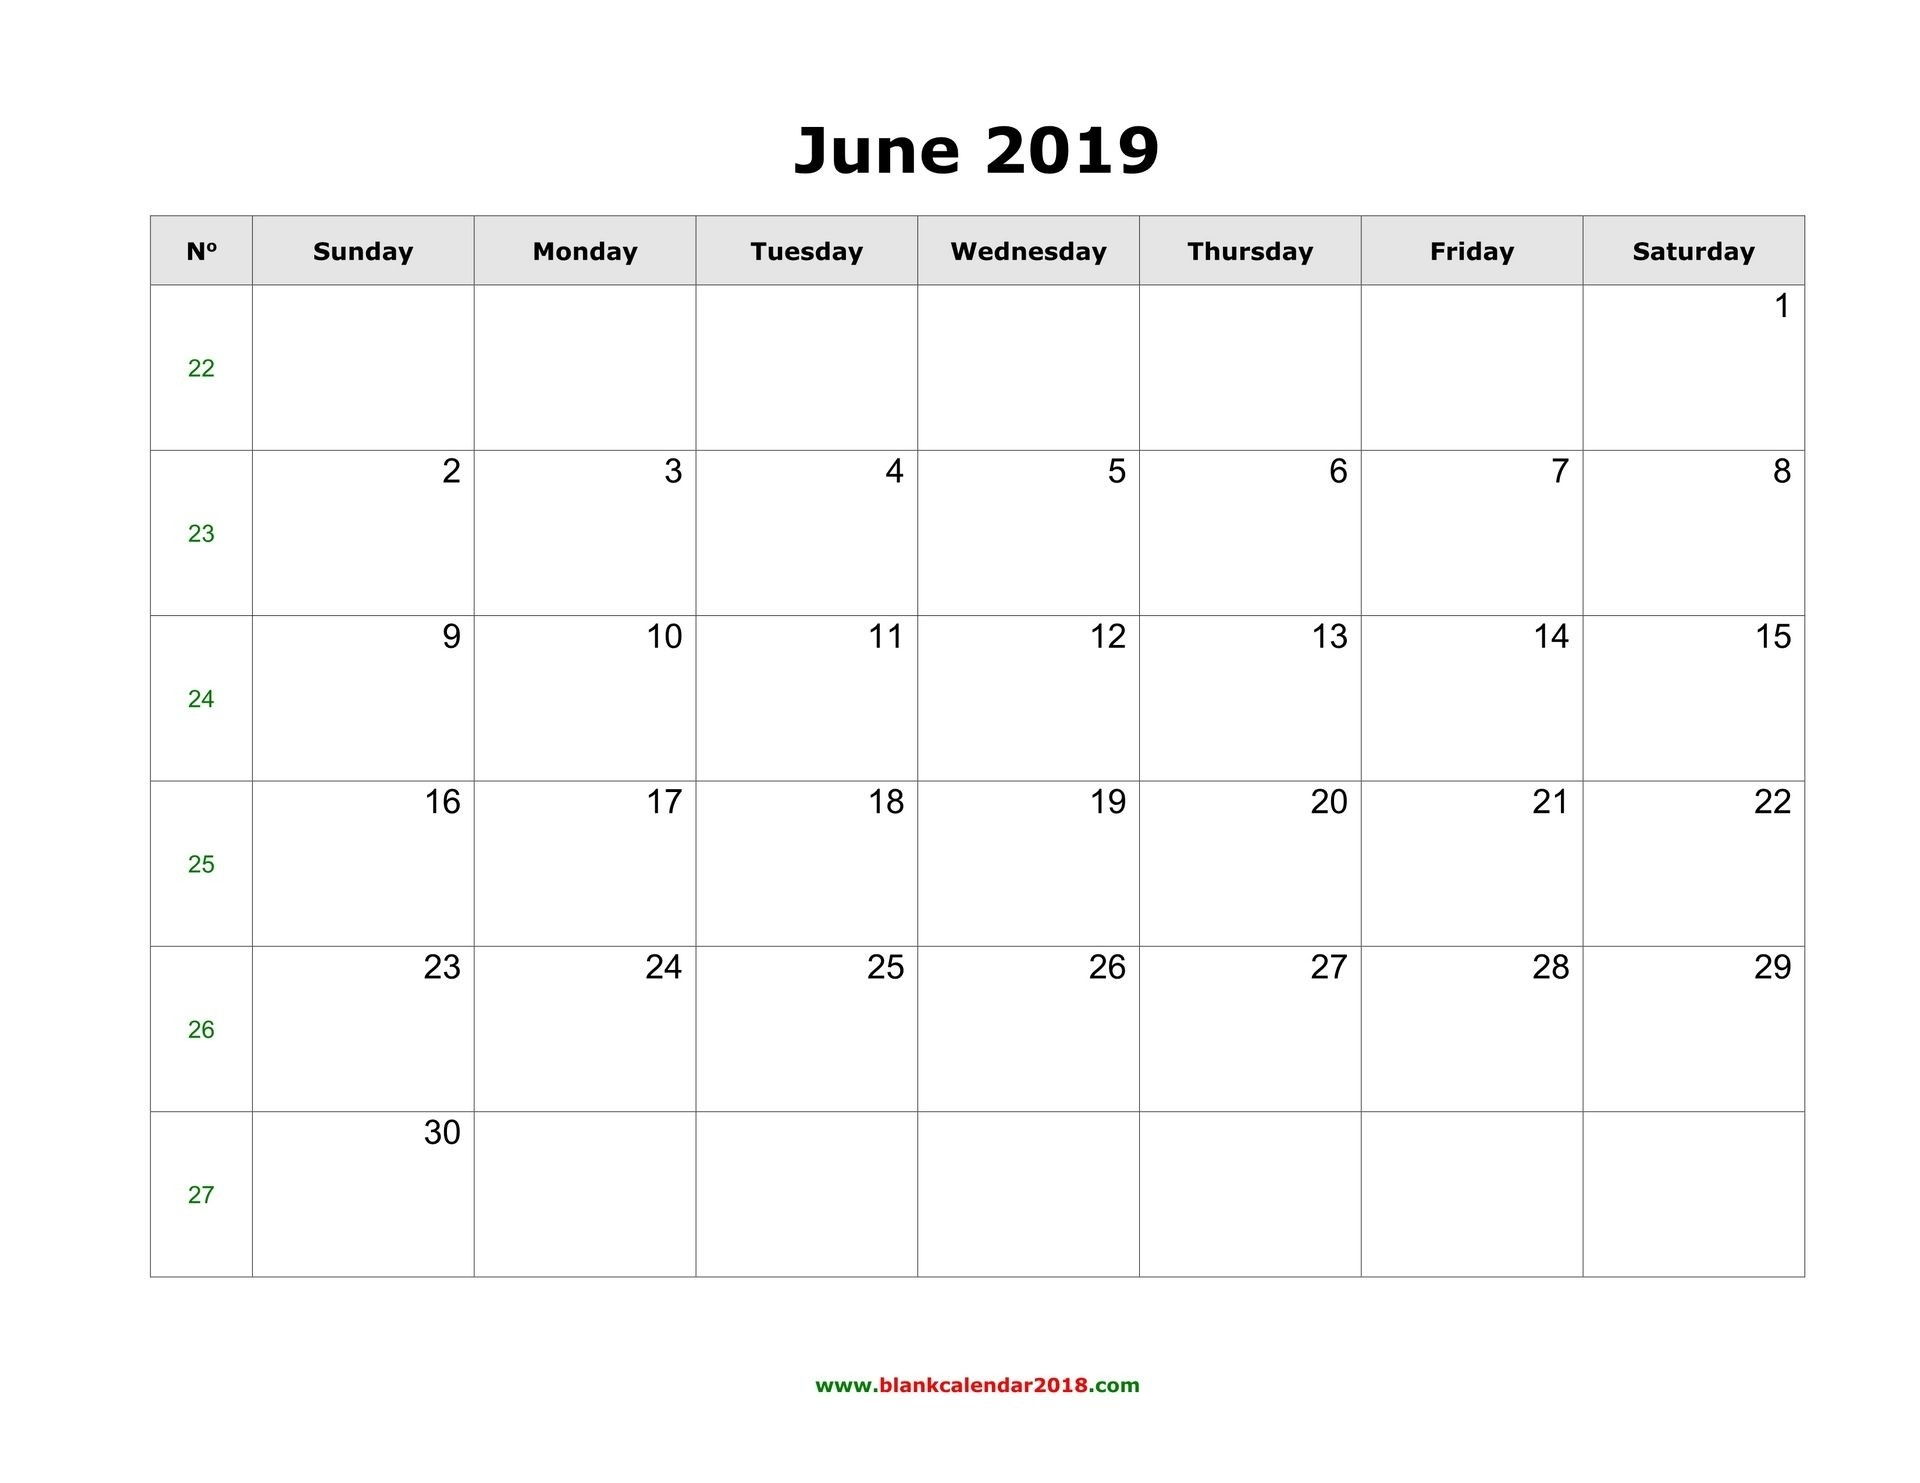 Editable June 2019 Calendar Word Template Portrait Landscape-Free Blanks Calendar Printable With Notes And Lines